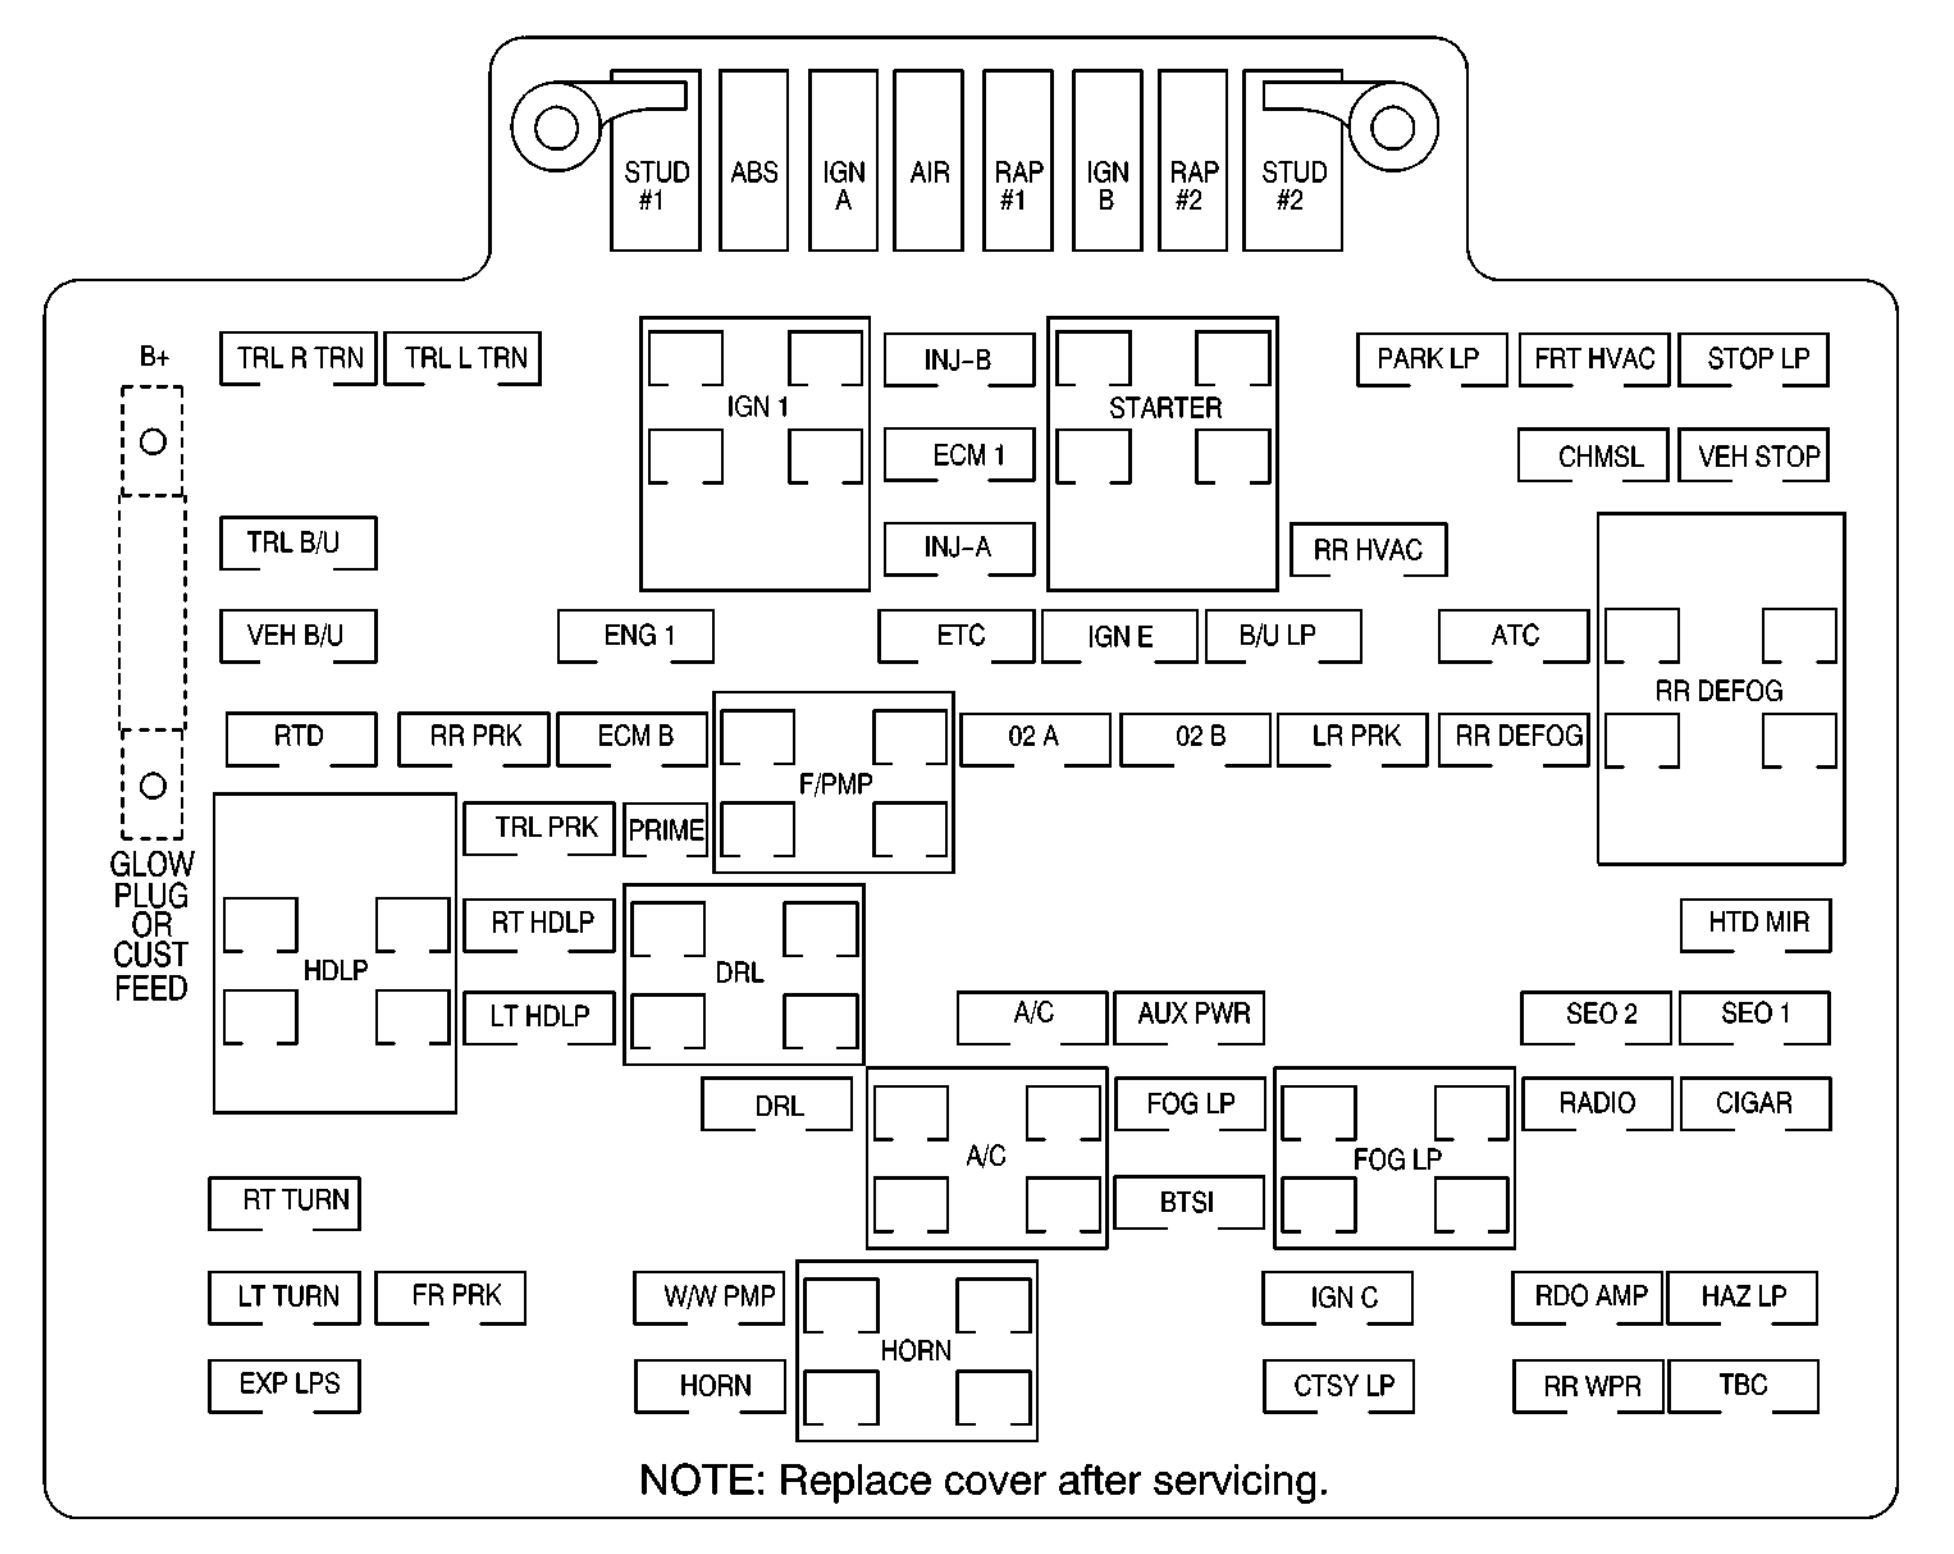 chevrolet tahoe (2002) - fuse box diagram - auto genius tahoe fuse box diagram #3